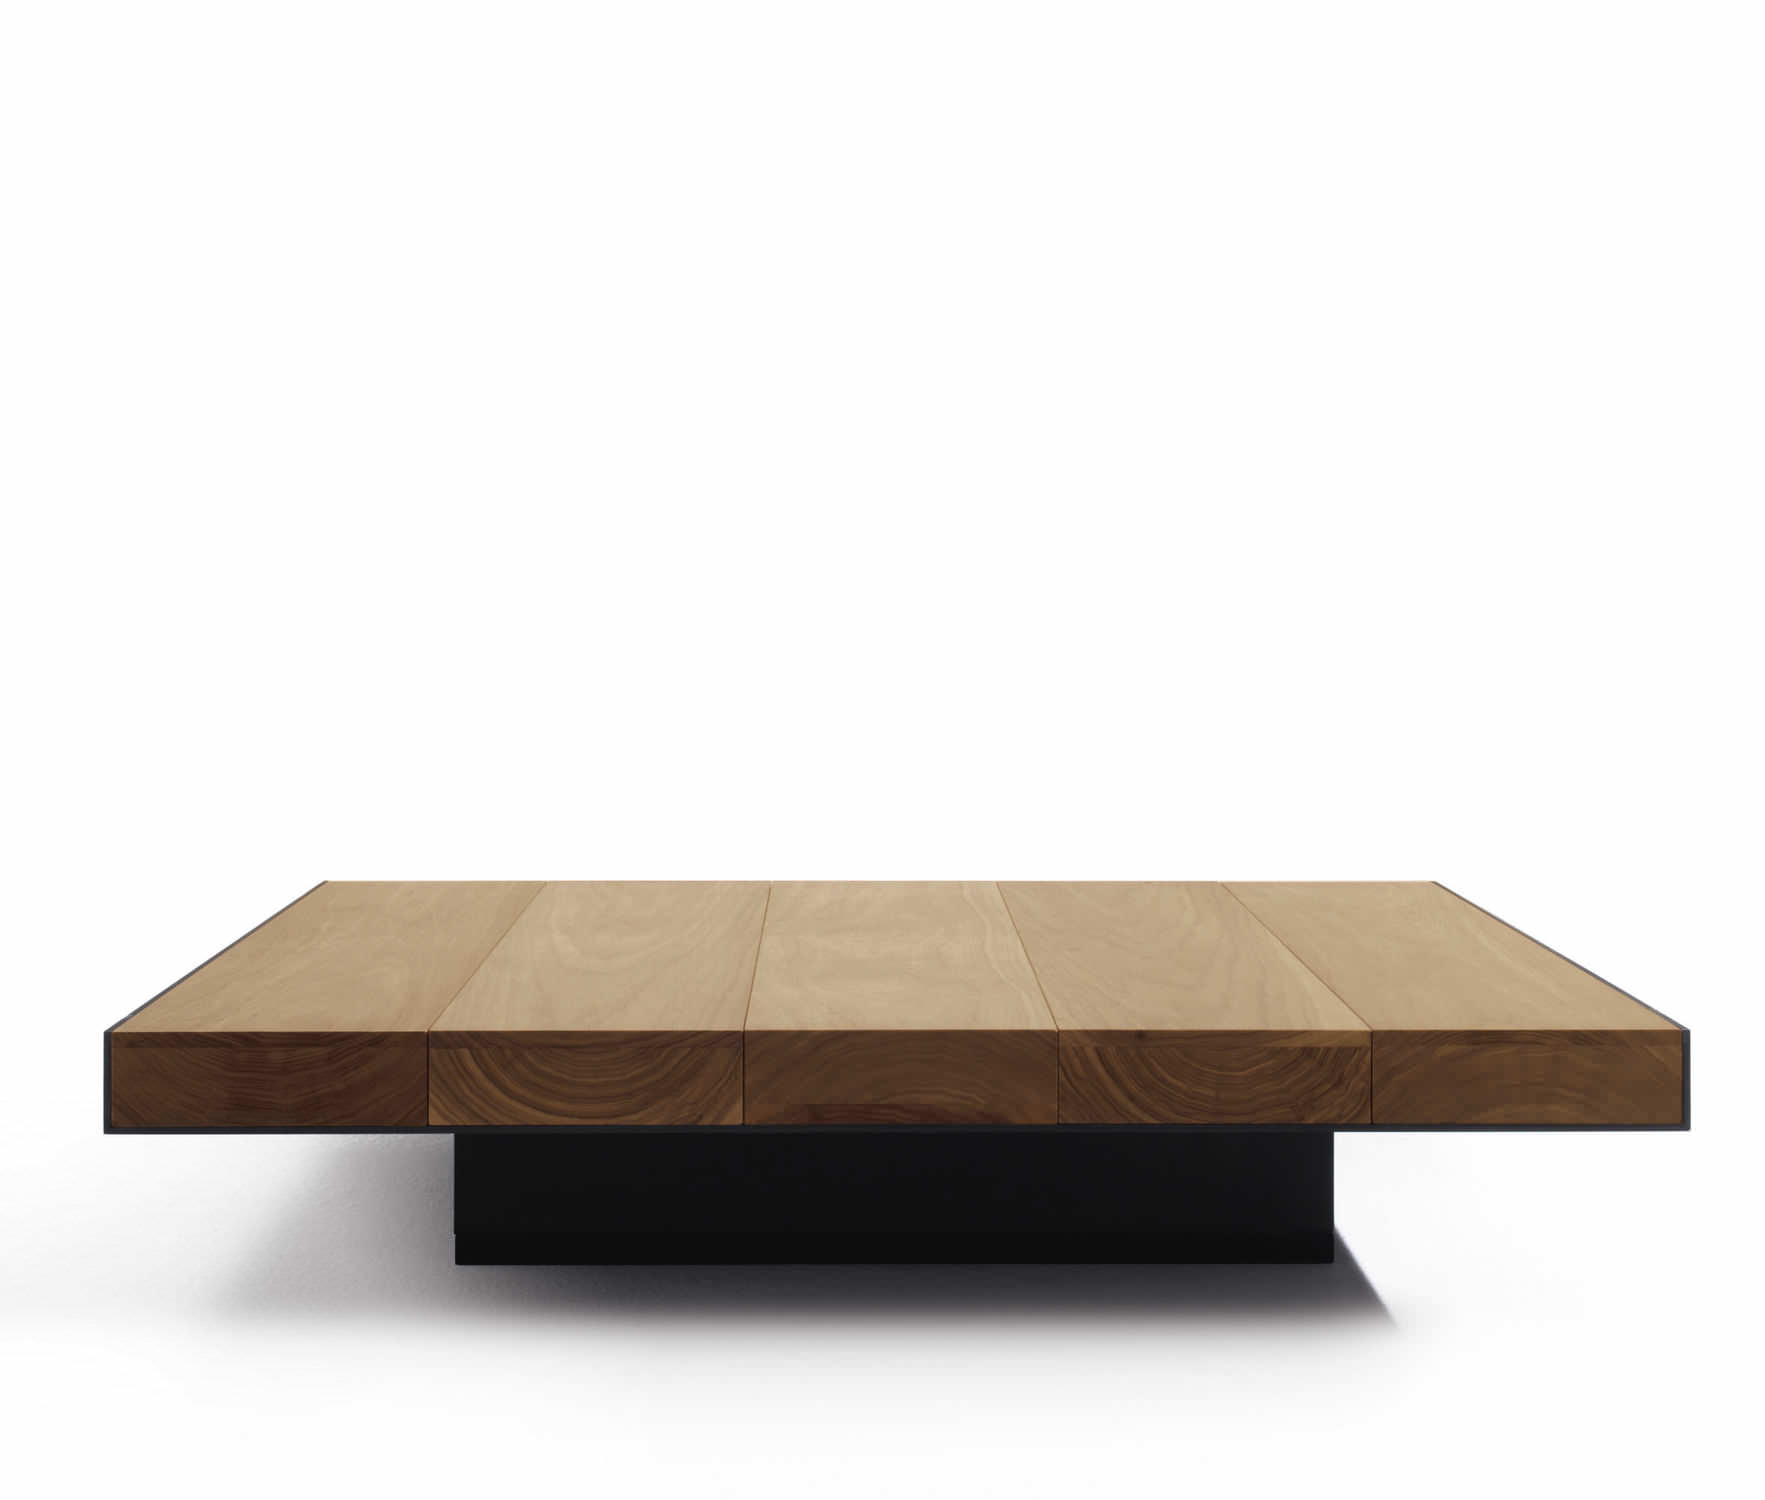 Table Deck Contemporaine Métal Basse Carrée En Noyer vYbf6gy7